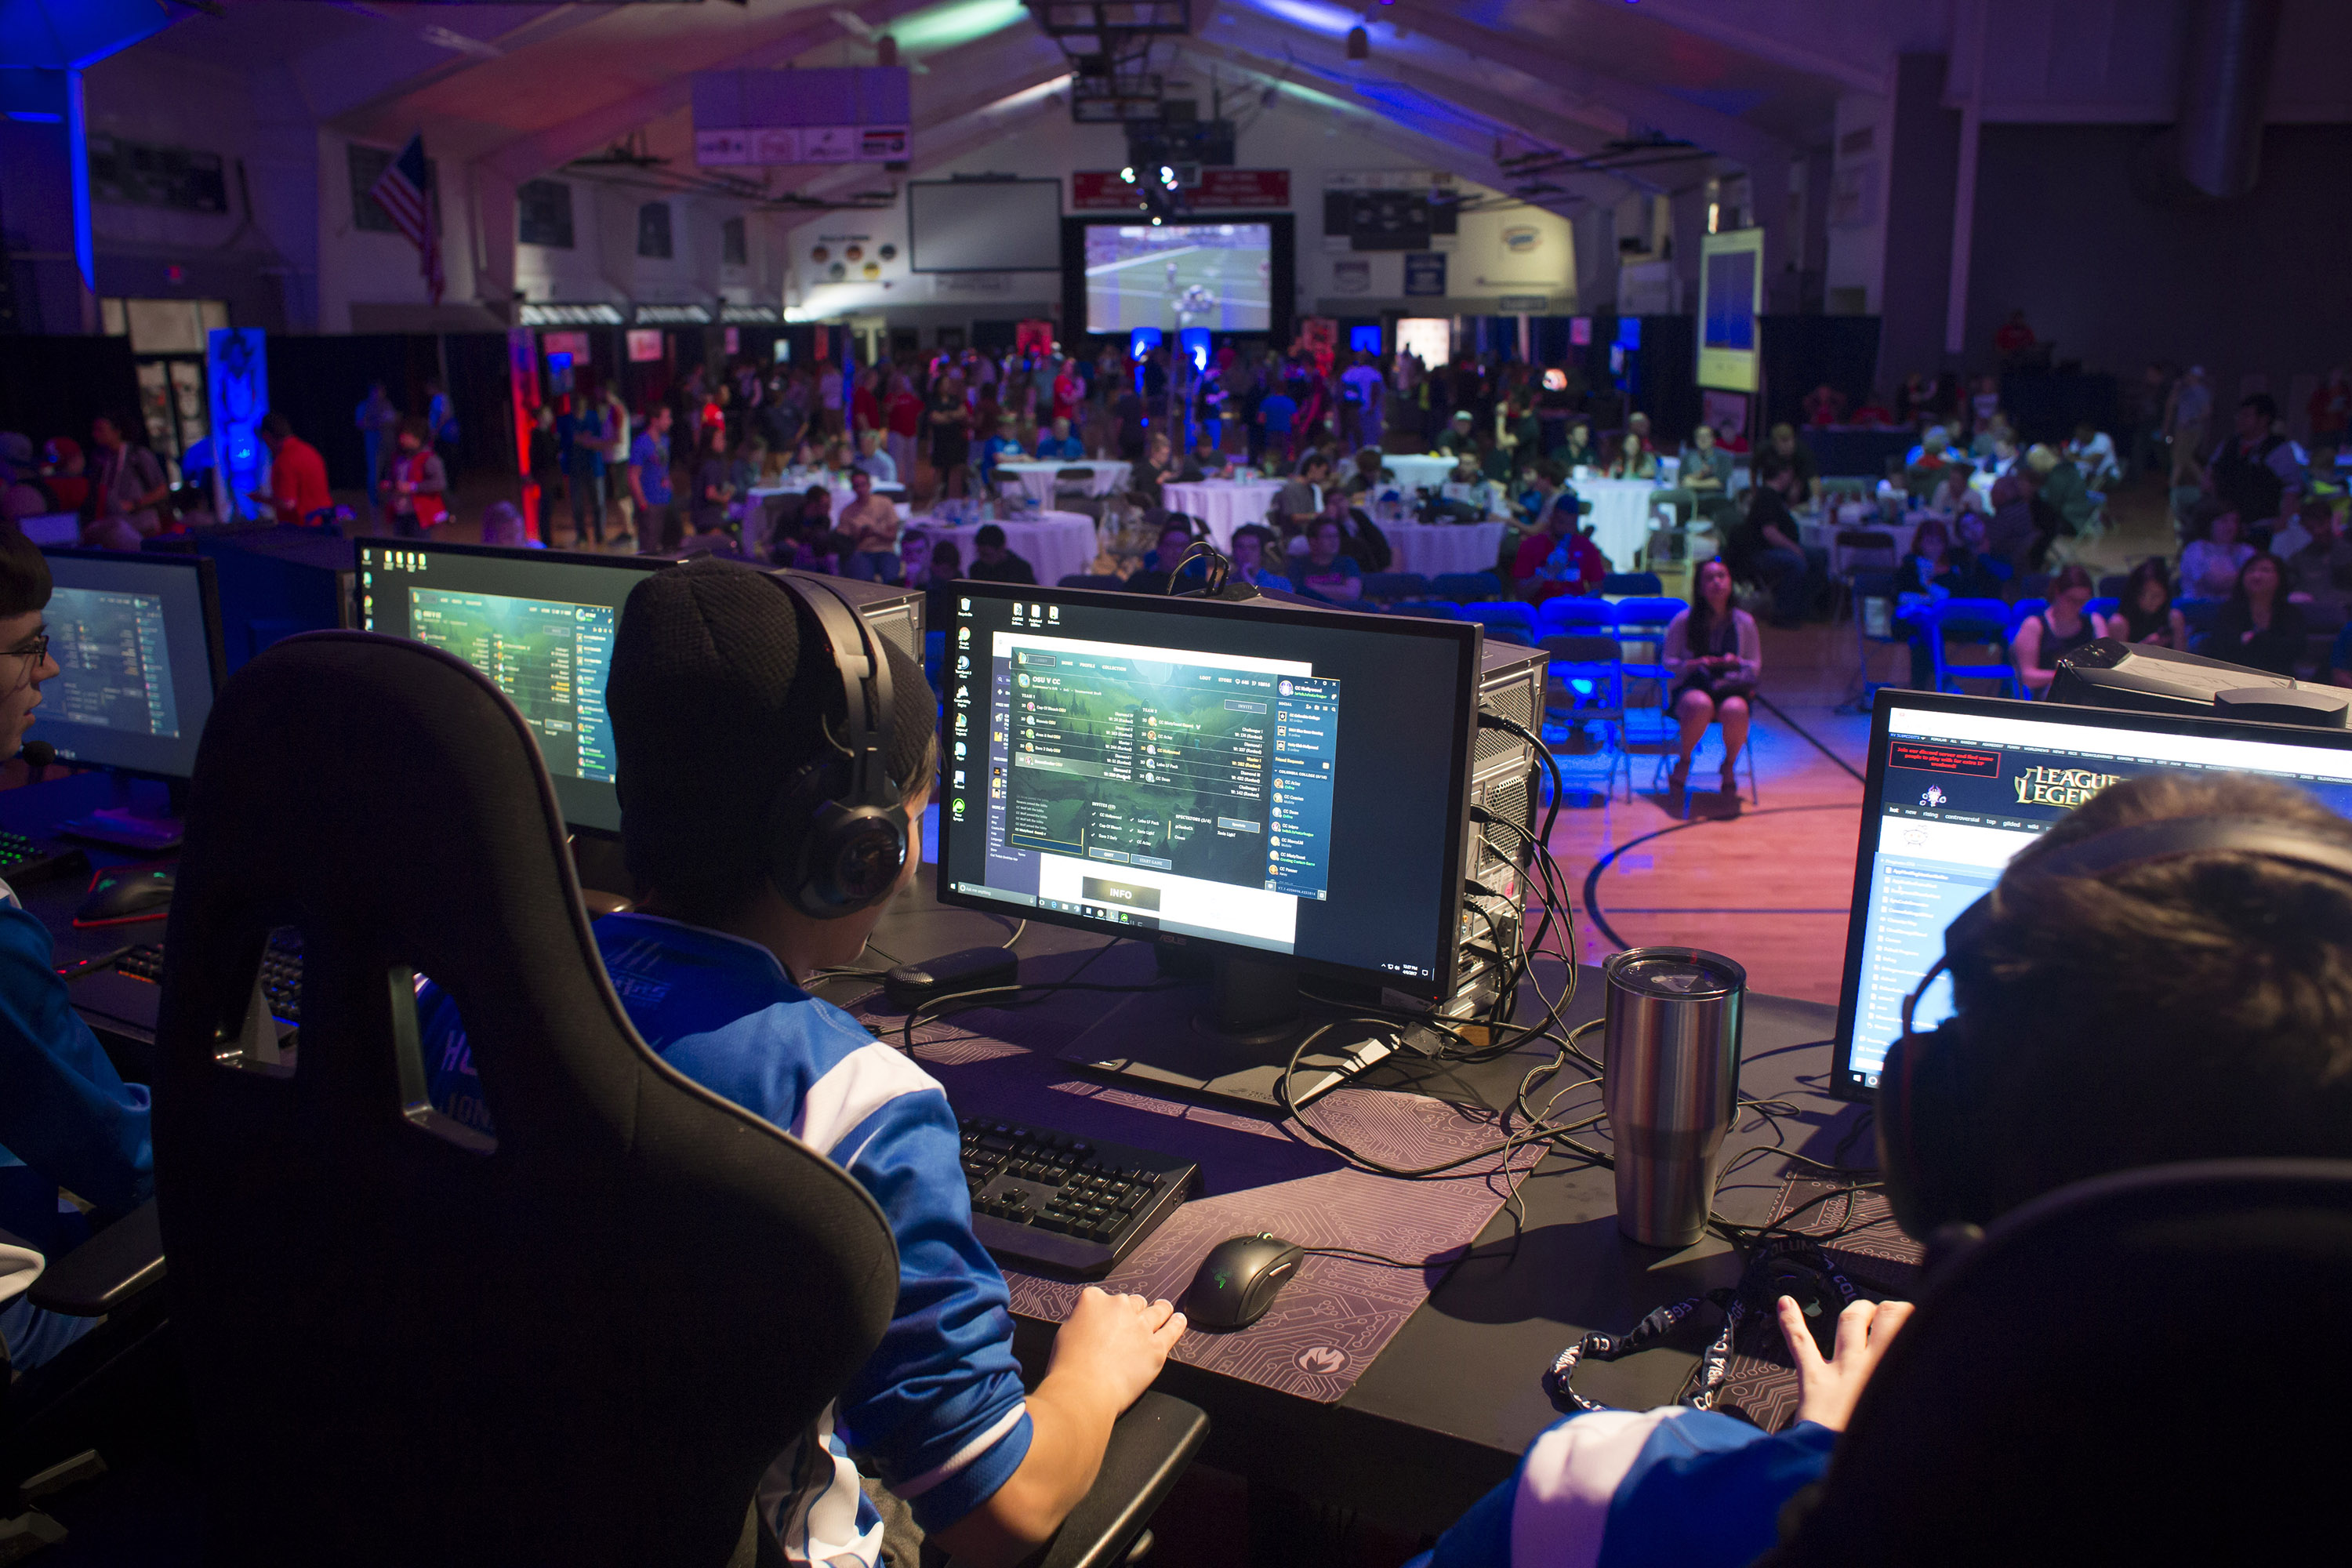 Midwest Campus Clash and Gaming Expo to feature top collegiate eSports teams in U.S.